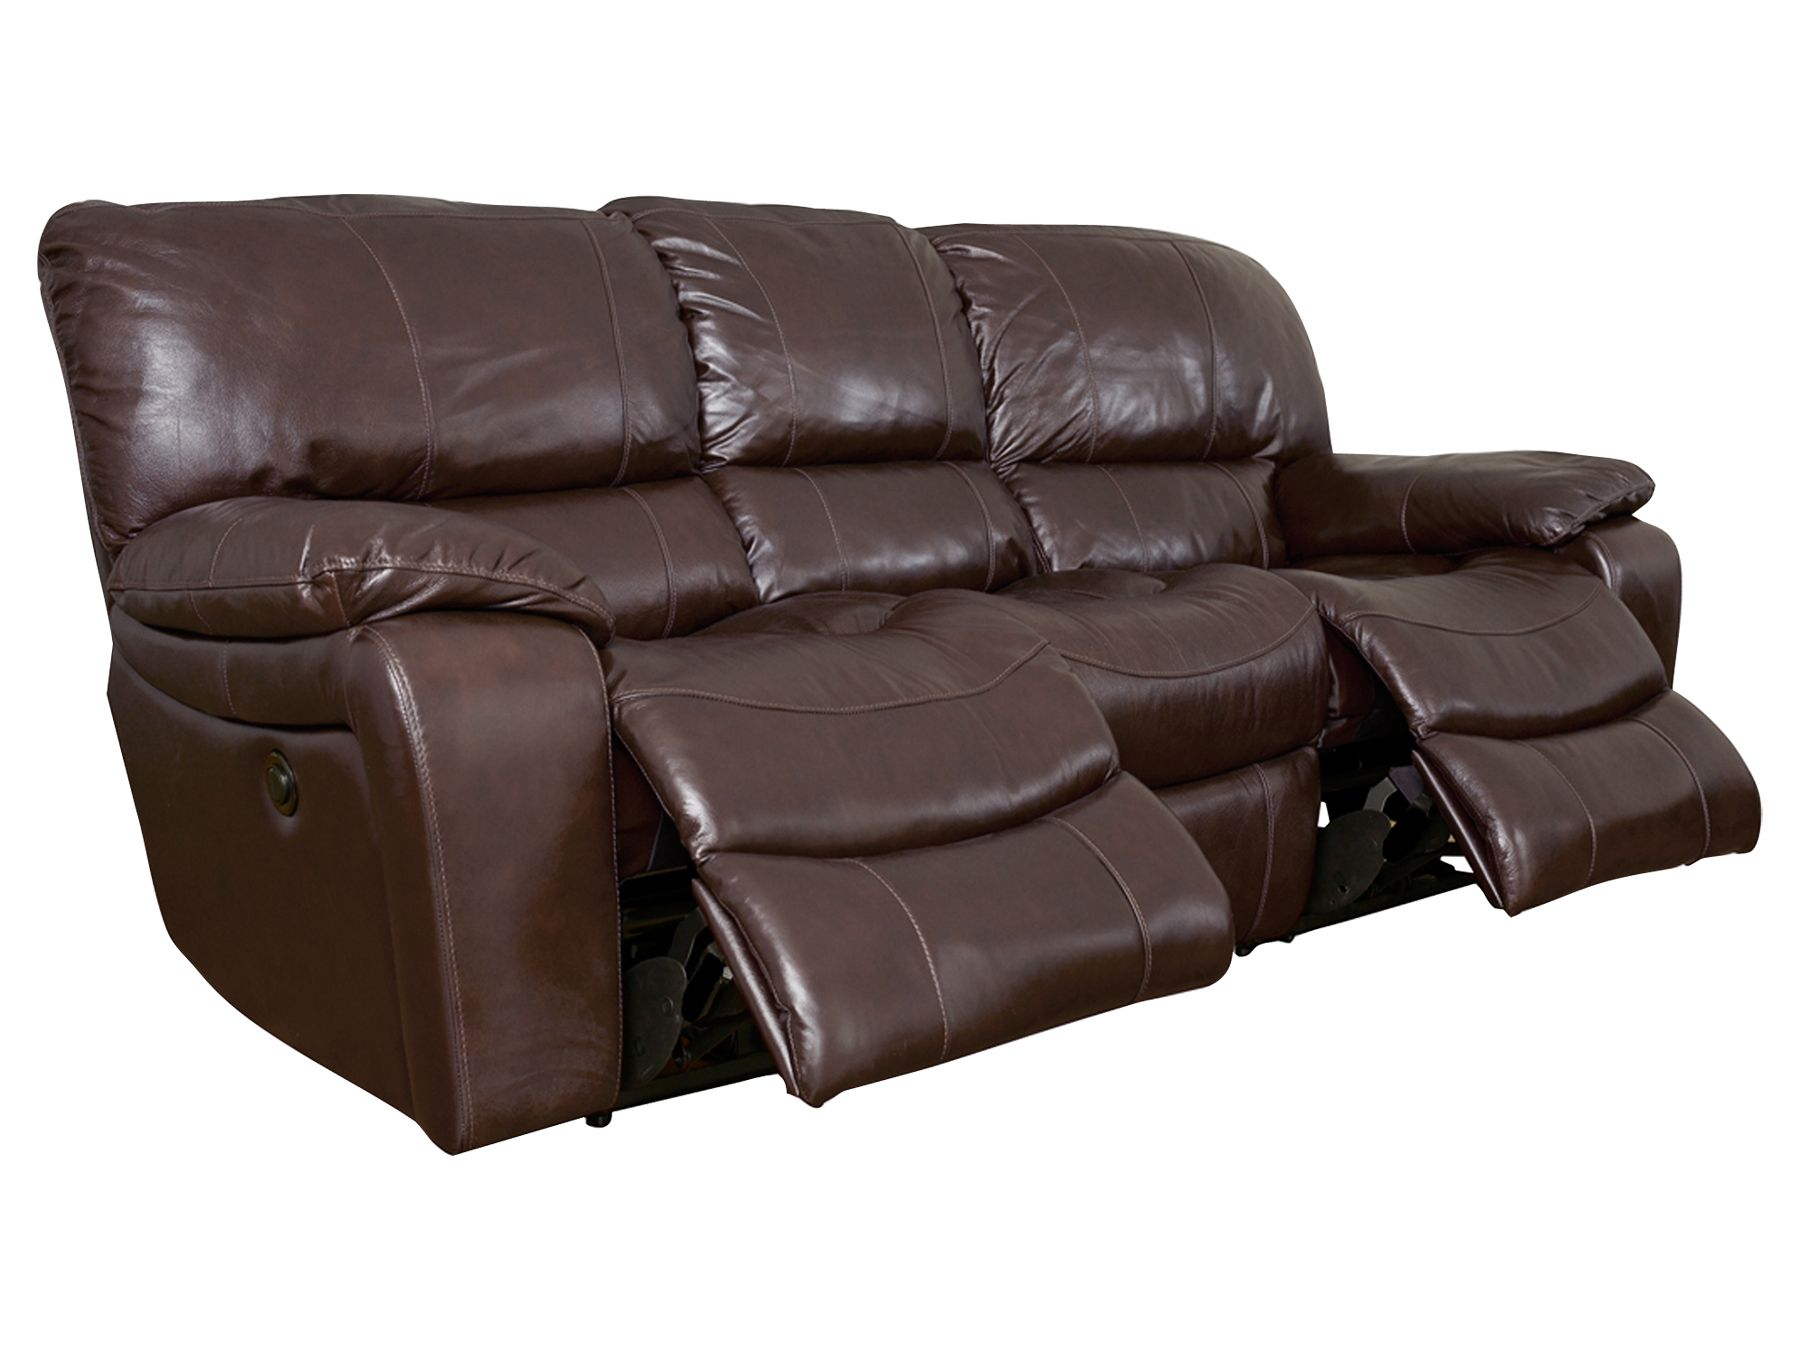 Brown Leather Sofa 3 Seater Recliner Leather Sofa Sofa Styling Sofa Shop Leather Reclining Sofa